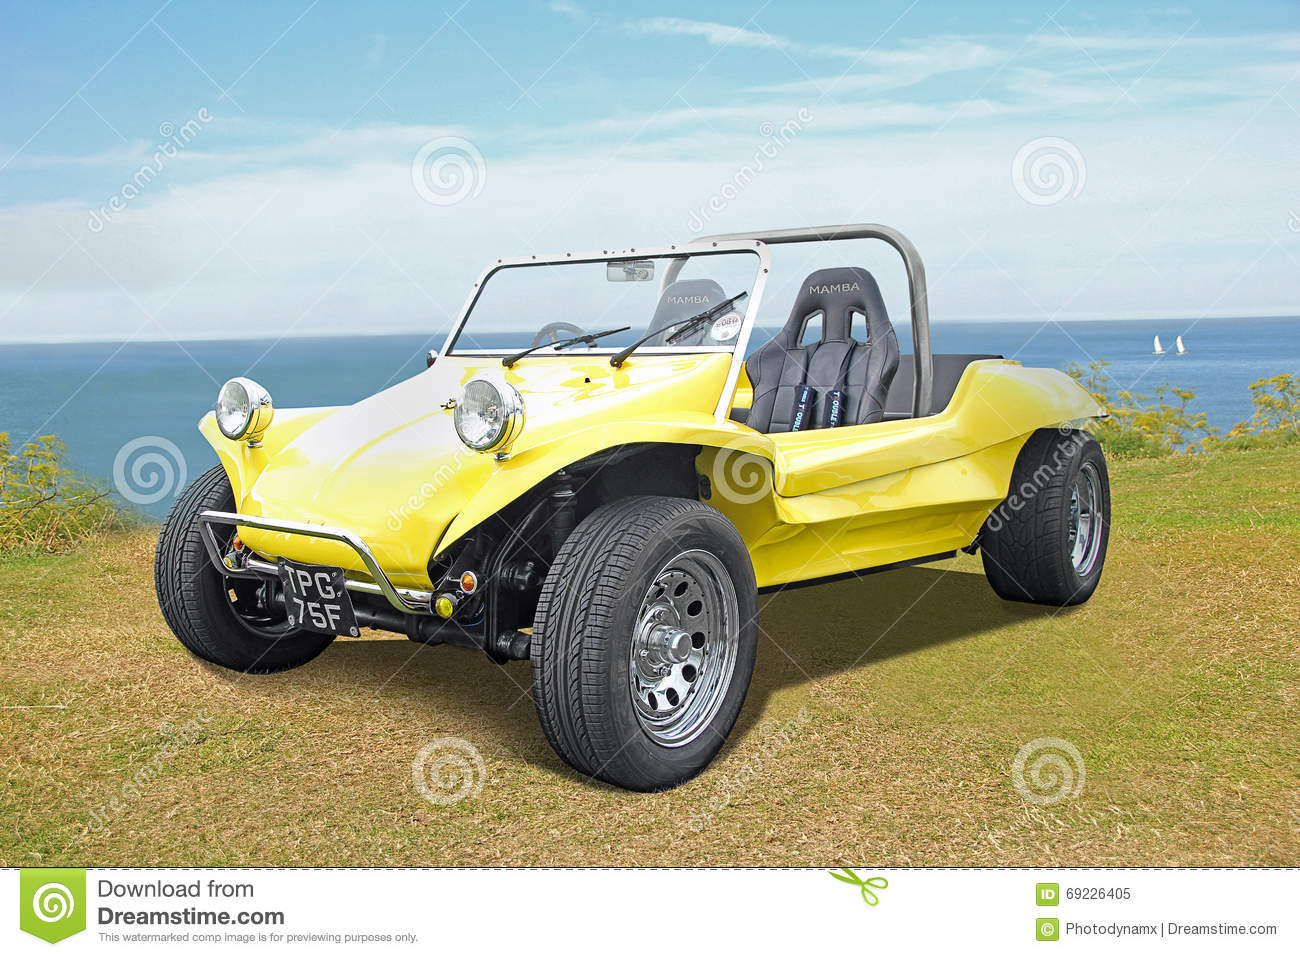 Beach buggy by coast editorial image  Image of ideal - 69226405